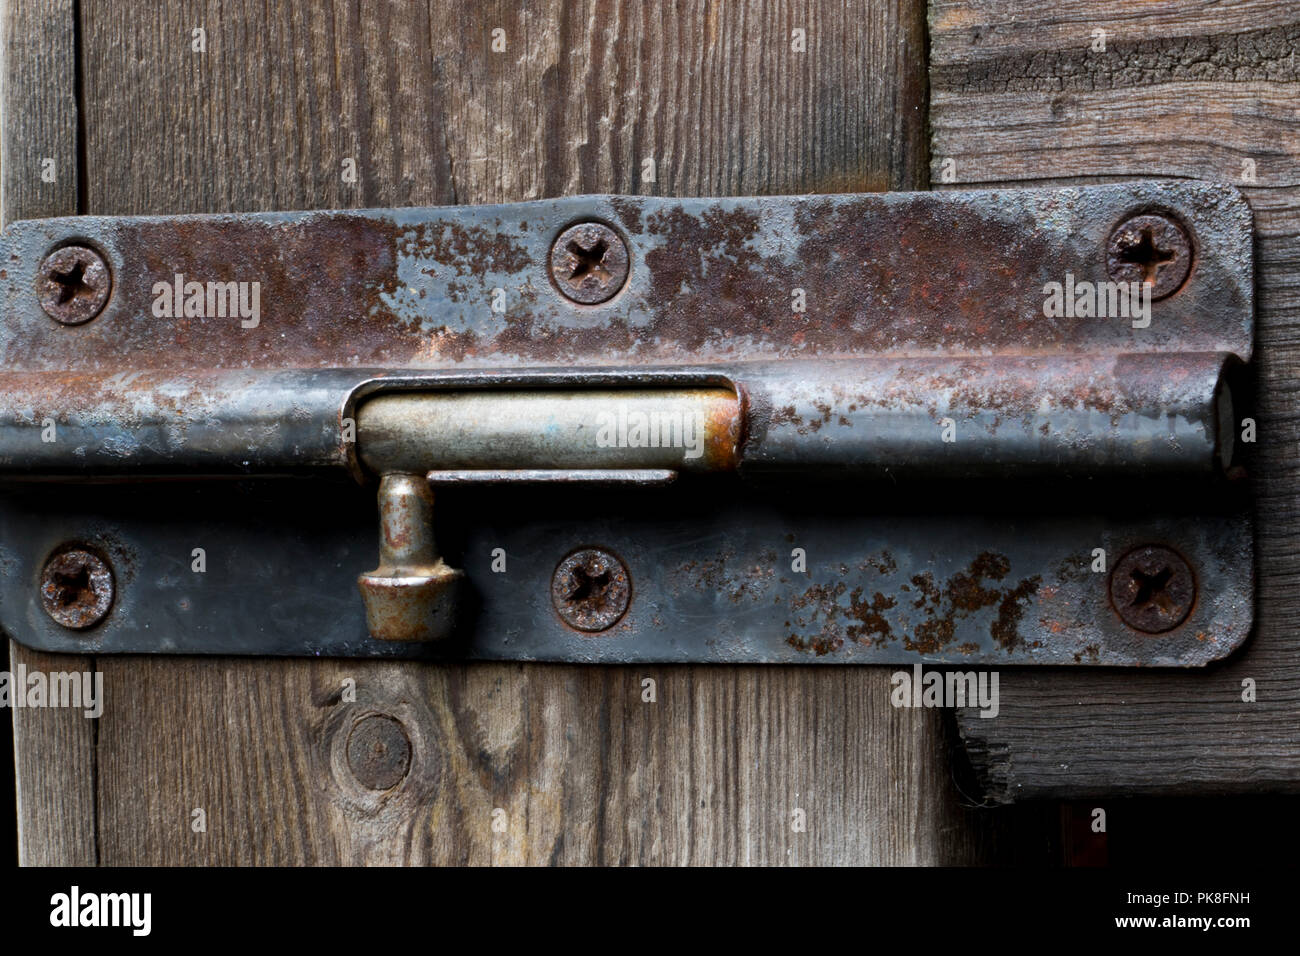 Old rust outdoor bolt lock on a wooden fence. - Stock Image